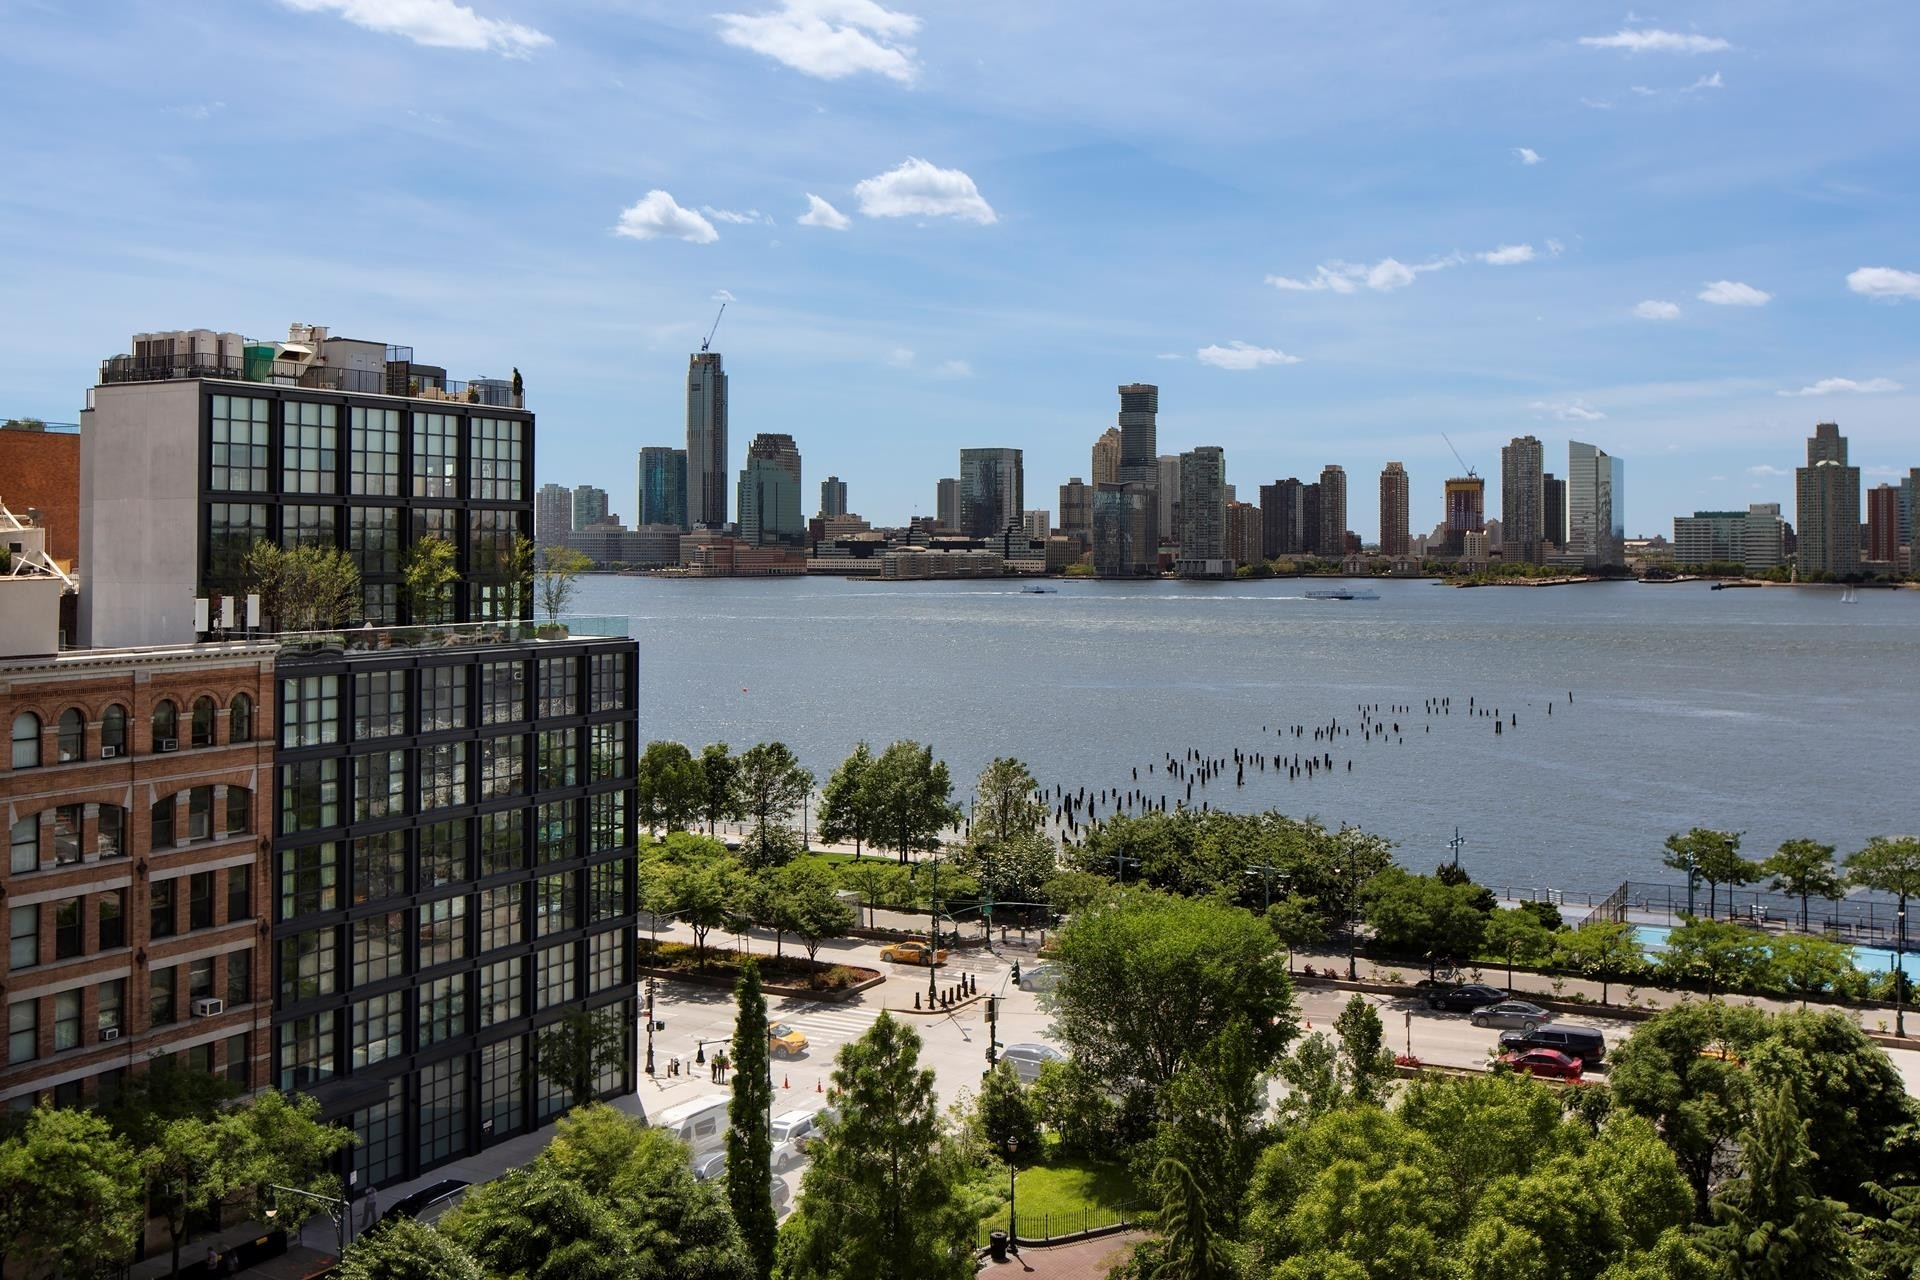 14. Condominiums for Sale at Spice Warehouse, 481 WASHINGTON ST , PHBC Hudson Square, New York, NY 10013